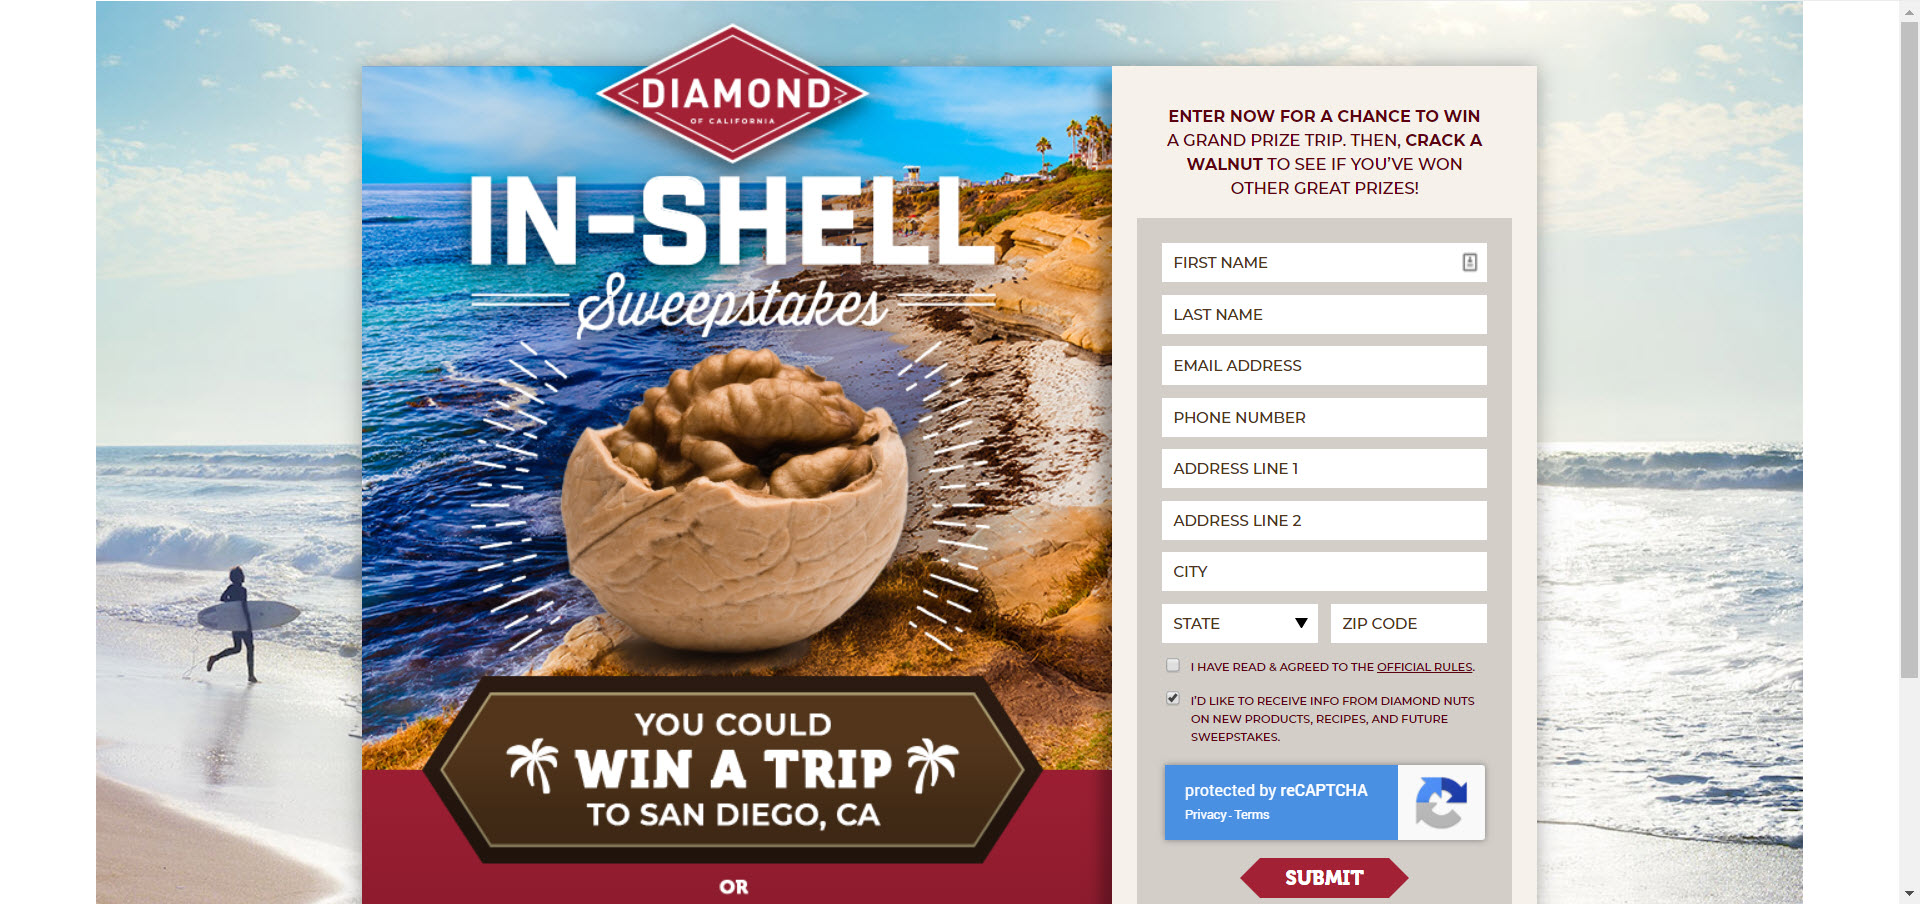 189 WINNERS! Play the Diamond Foods In-Shell Instant Win Game daily for your chance to win a prize instantly and be entered into the gran prize drawing to win a trip for two to San Diego, California.